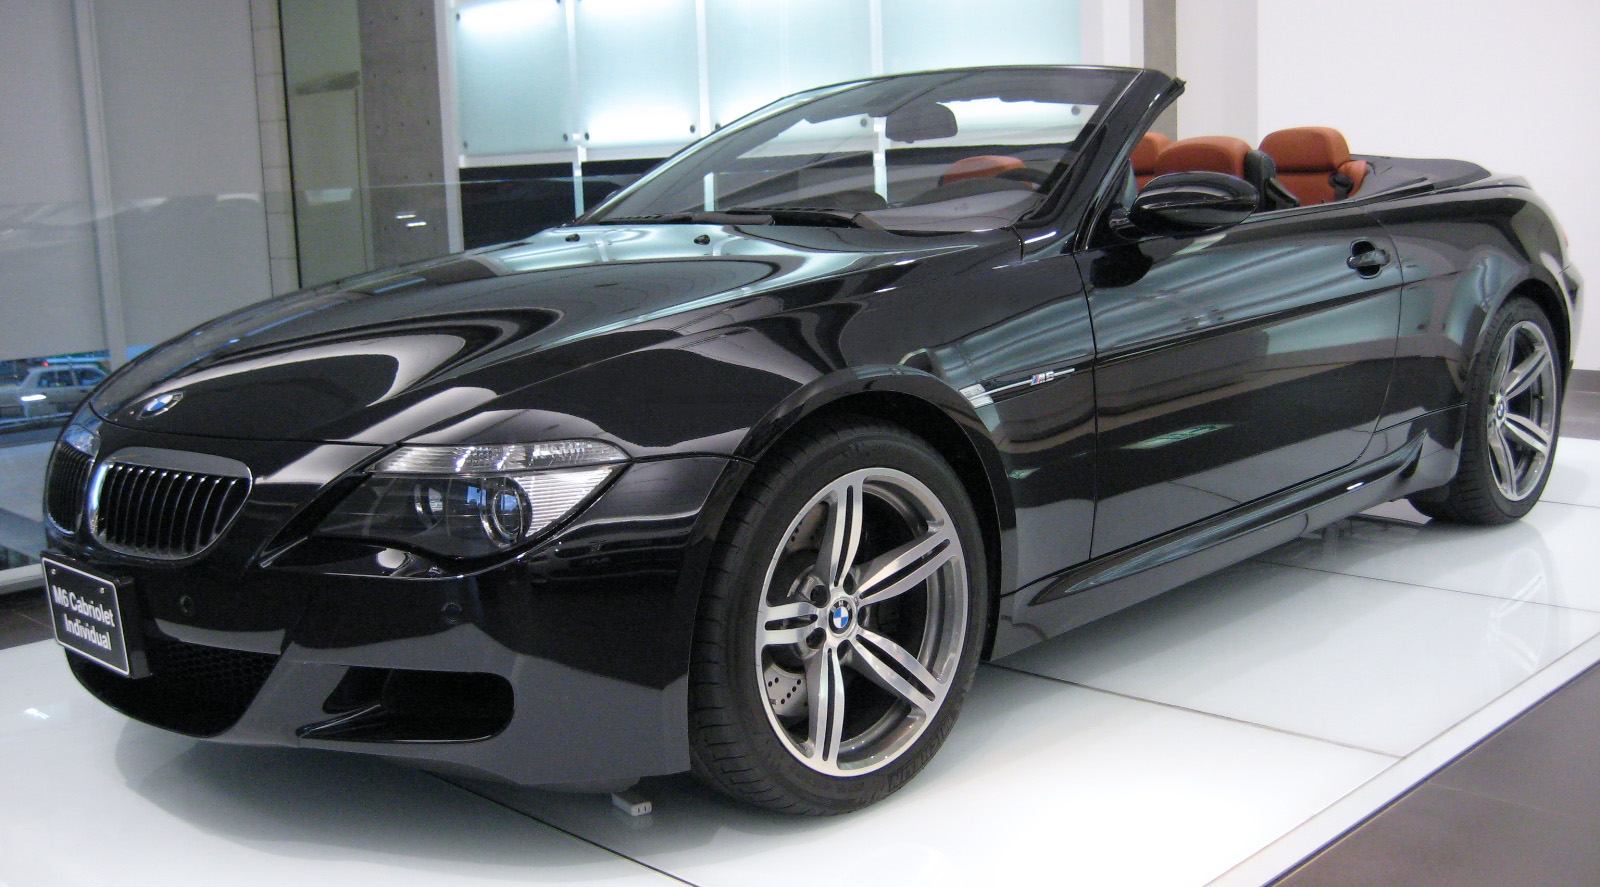 file bmw e64 m6 convertible jpg wikimedia commons. Black Bedroom Furniture Sets. Home Design Ideas